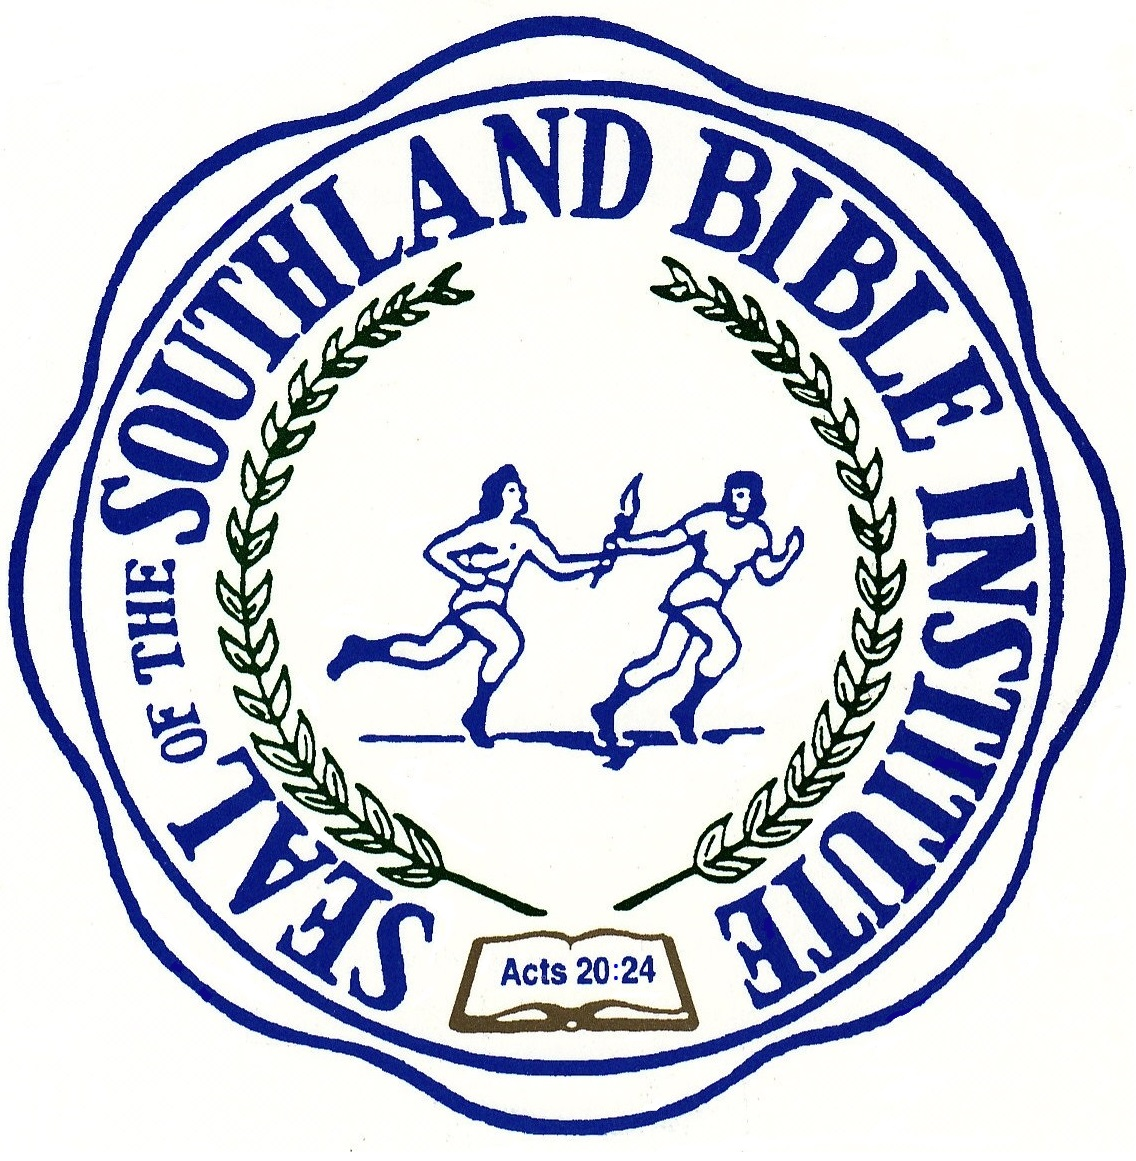 Southland Bible Institute